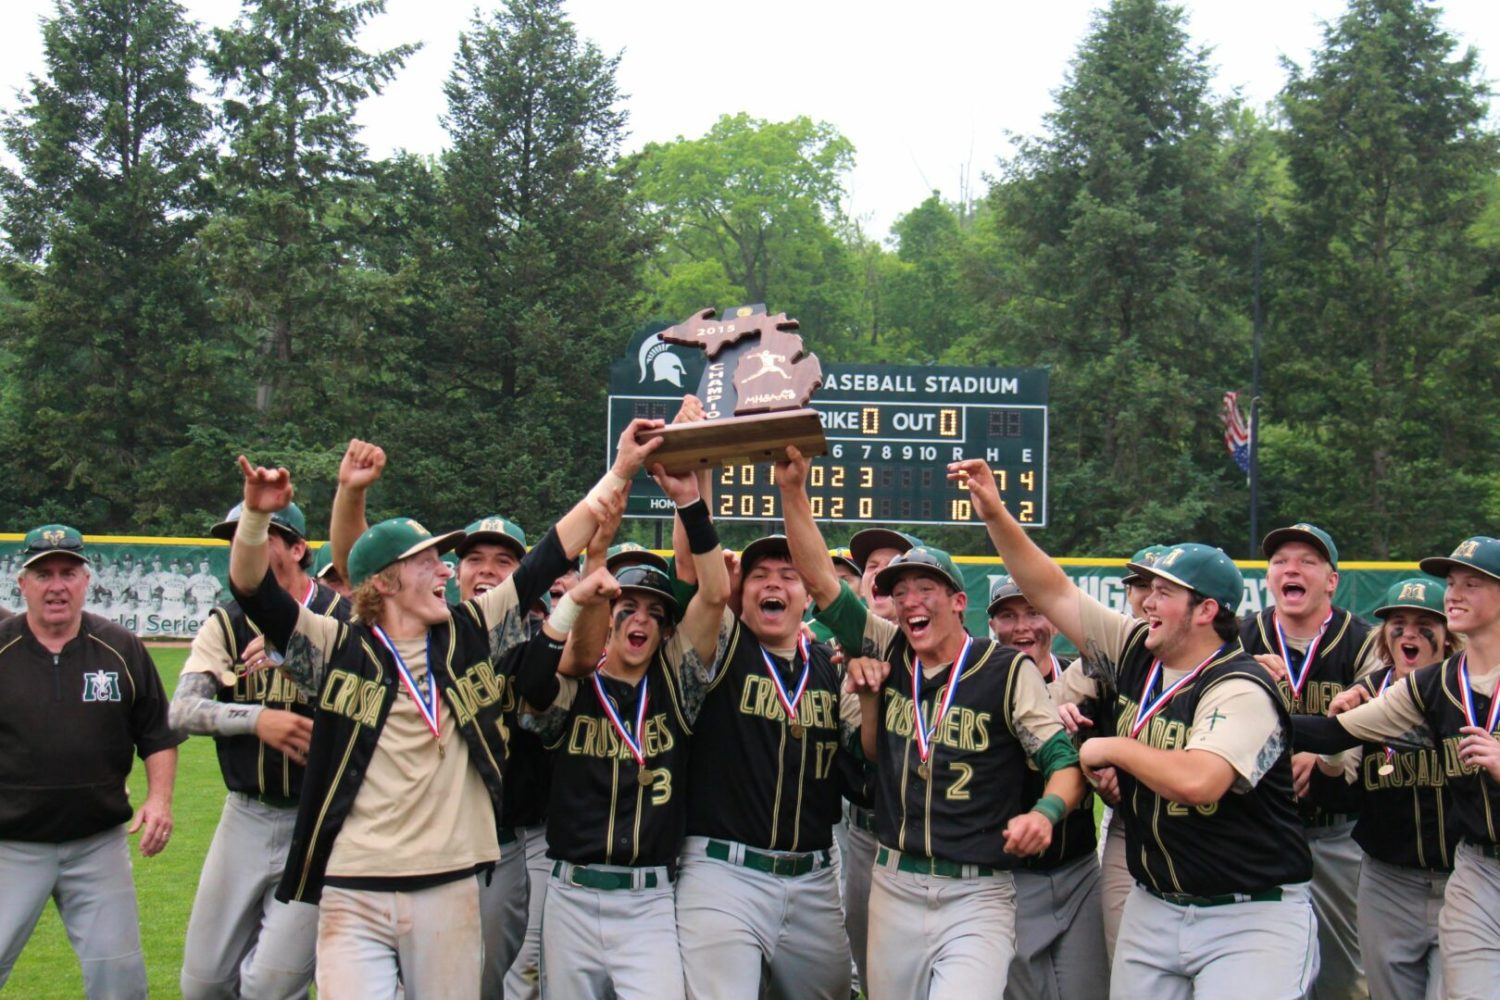 Muskegon Catholic captures first state baseball championship in school history, beating Centreville 10-8